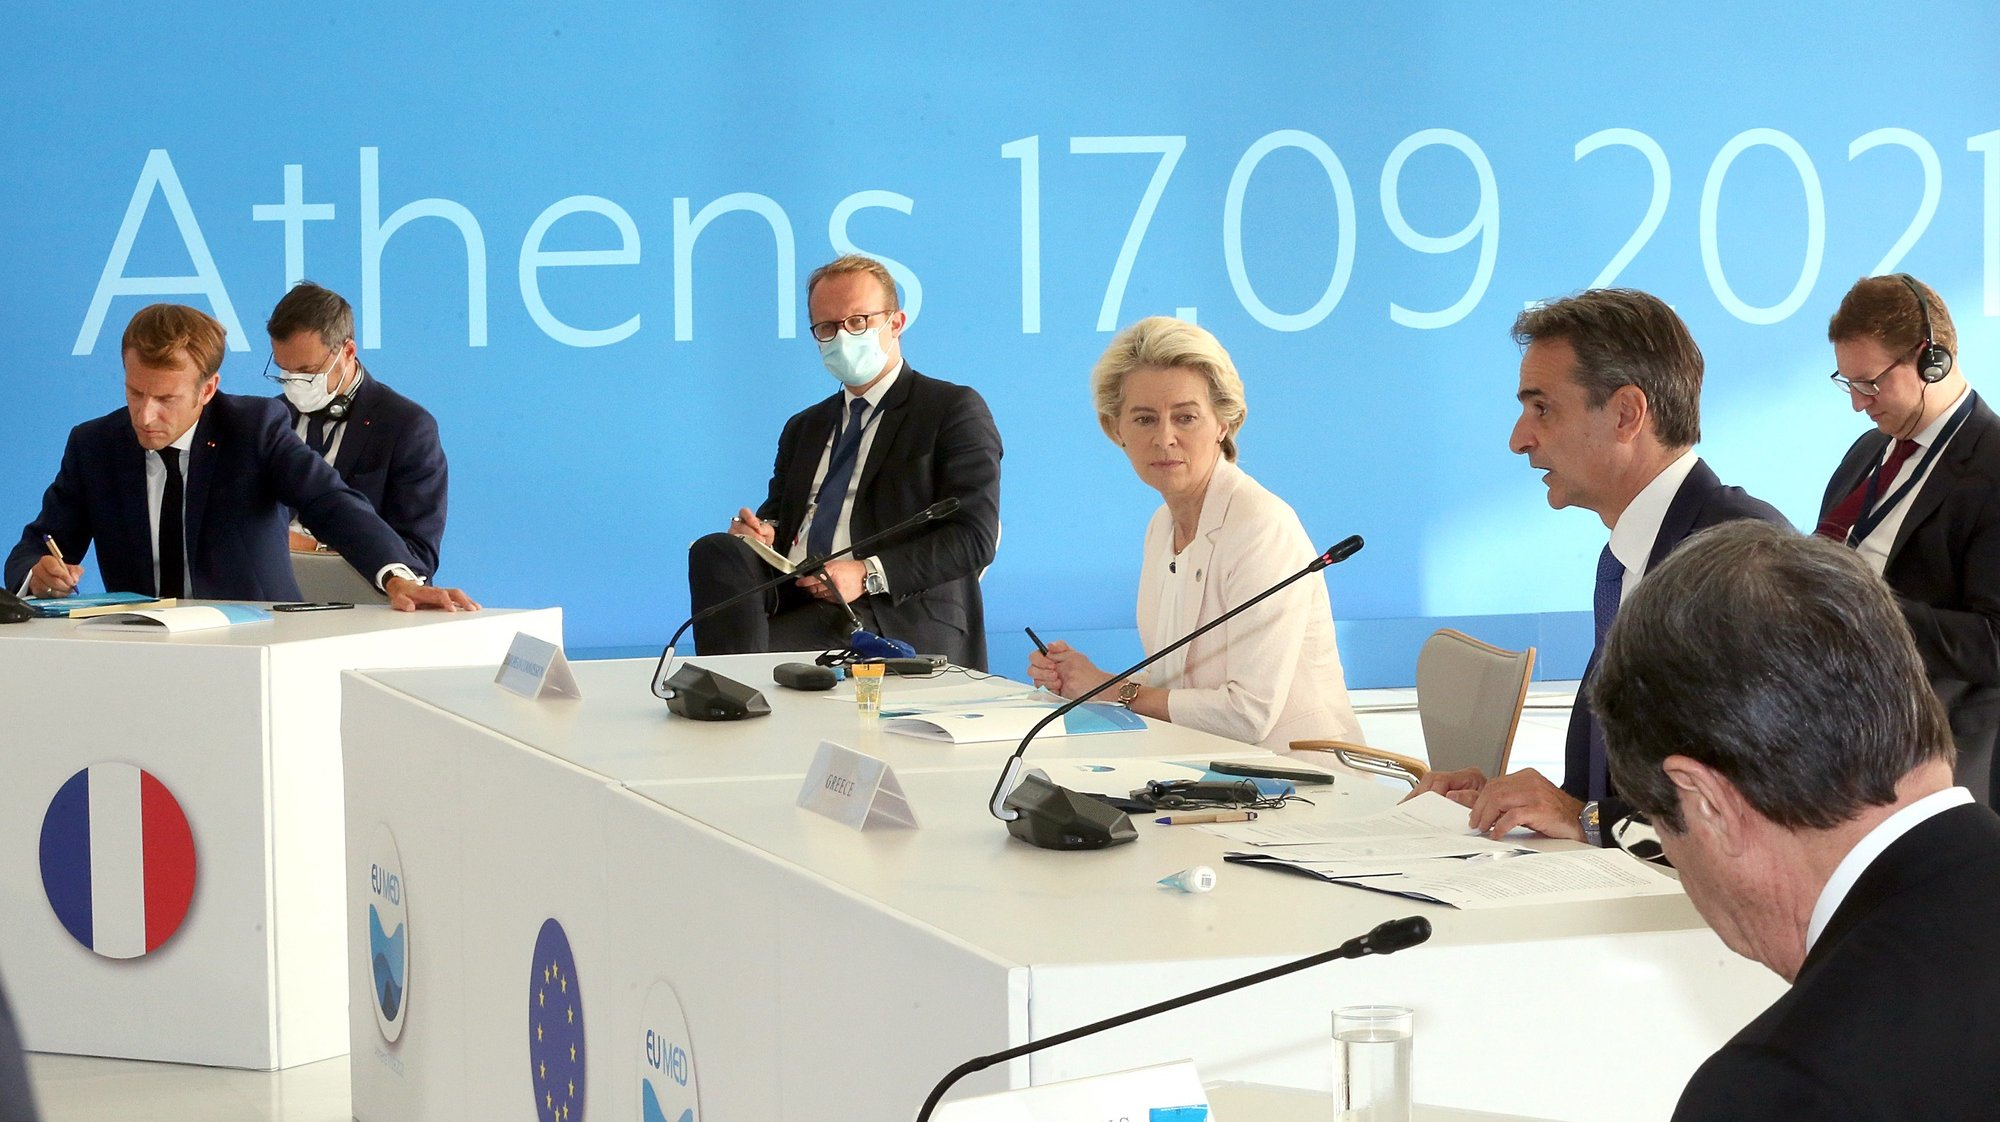 epa09473758 Greek Prime Minister Kyriakos Mitsotakis (R), President of the European Commission Ursula von der Leyen (R2) and French President Emmanuel Macron (L) participate at the EUMed9 Summit, in Athens, Greece, 17 September 2021.The agenda of the Summit, which acquires special geopolitical weight, includes security challenges in the Mediterranean that endanger stability in the region, potential new crises, such as the threat of migration flows after the latest developments in Afghanistan, and other crises, the consequences of which Mediterranean countries are already experiencing, such as climate change.  EPA/ORESTIS PANAGIOTOU